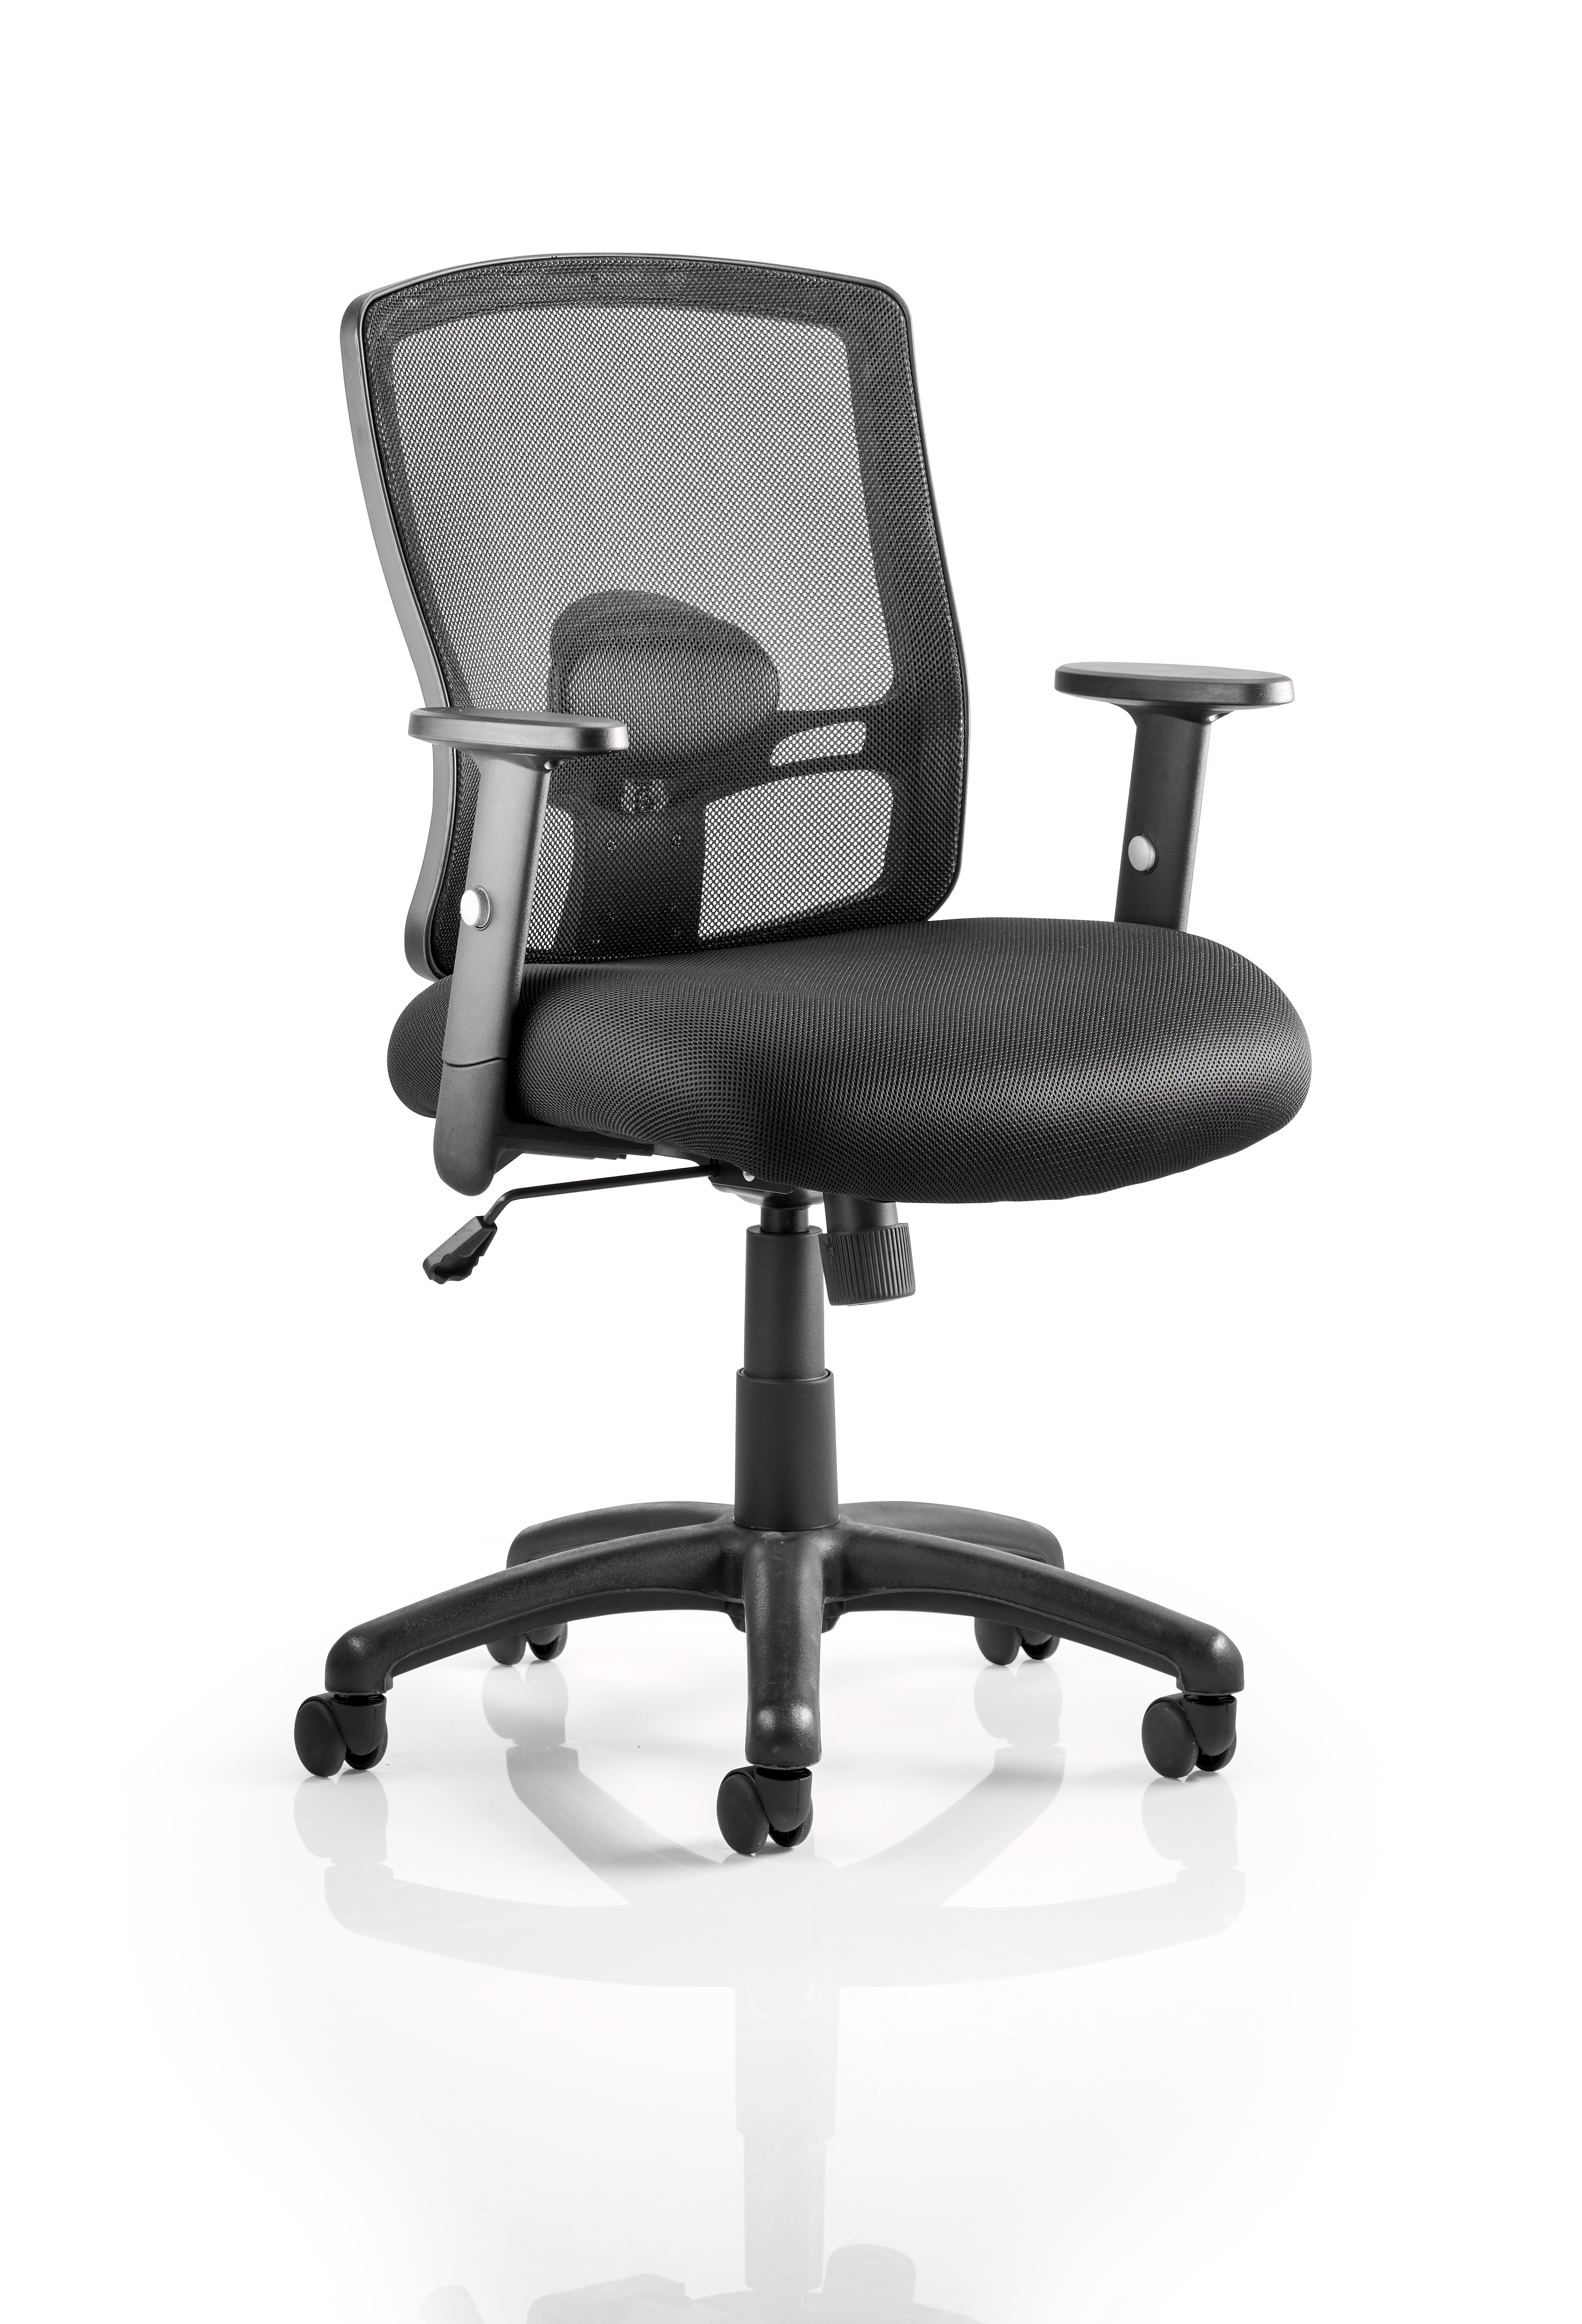 Desk Chairs Portland Chair With Arms OP000105